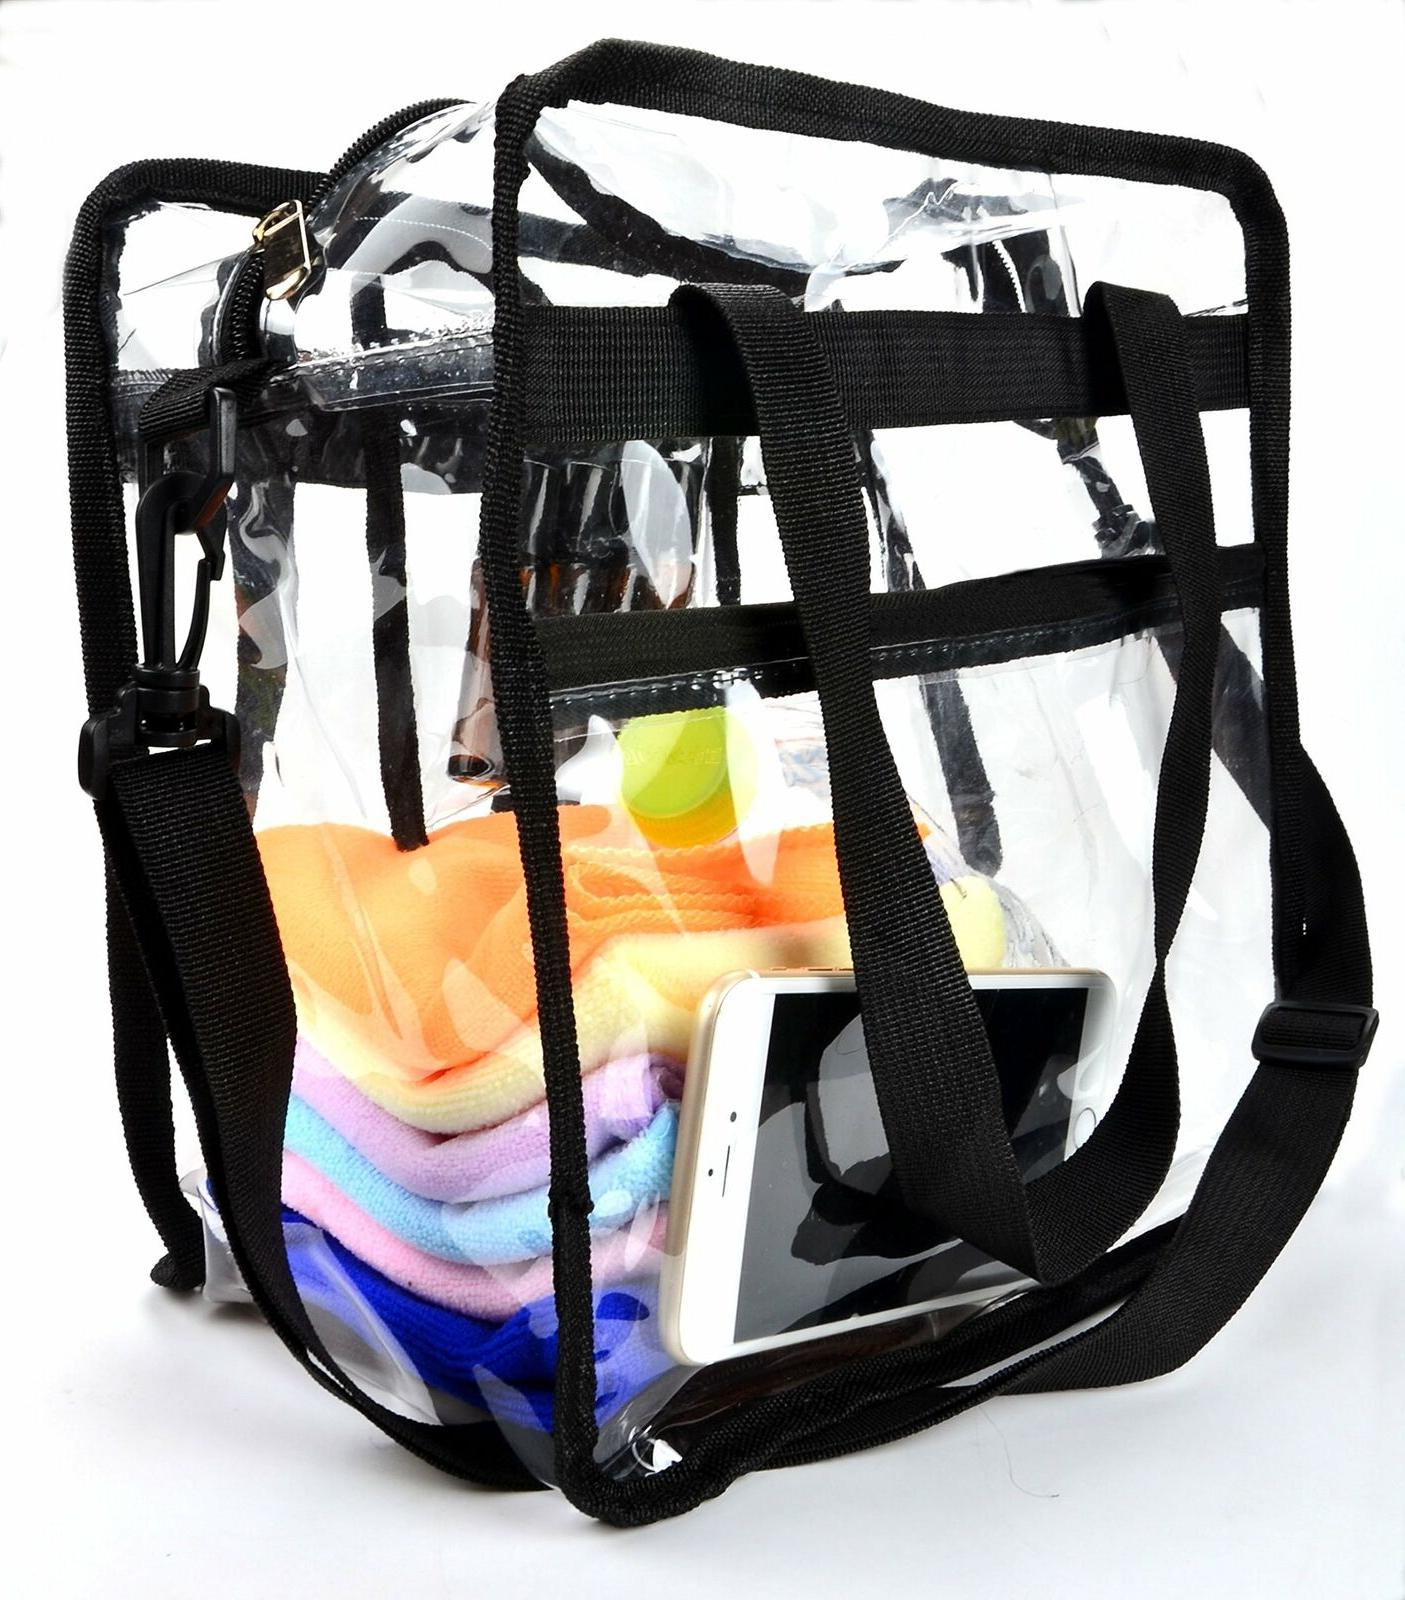 Clear Heavy Tote School Holds Up to 50lbs